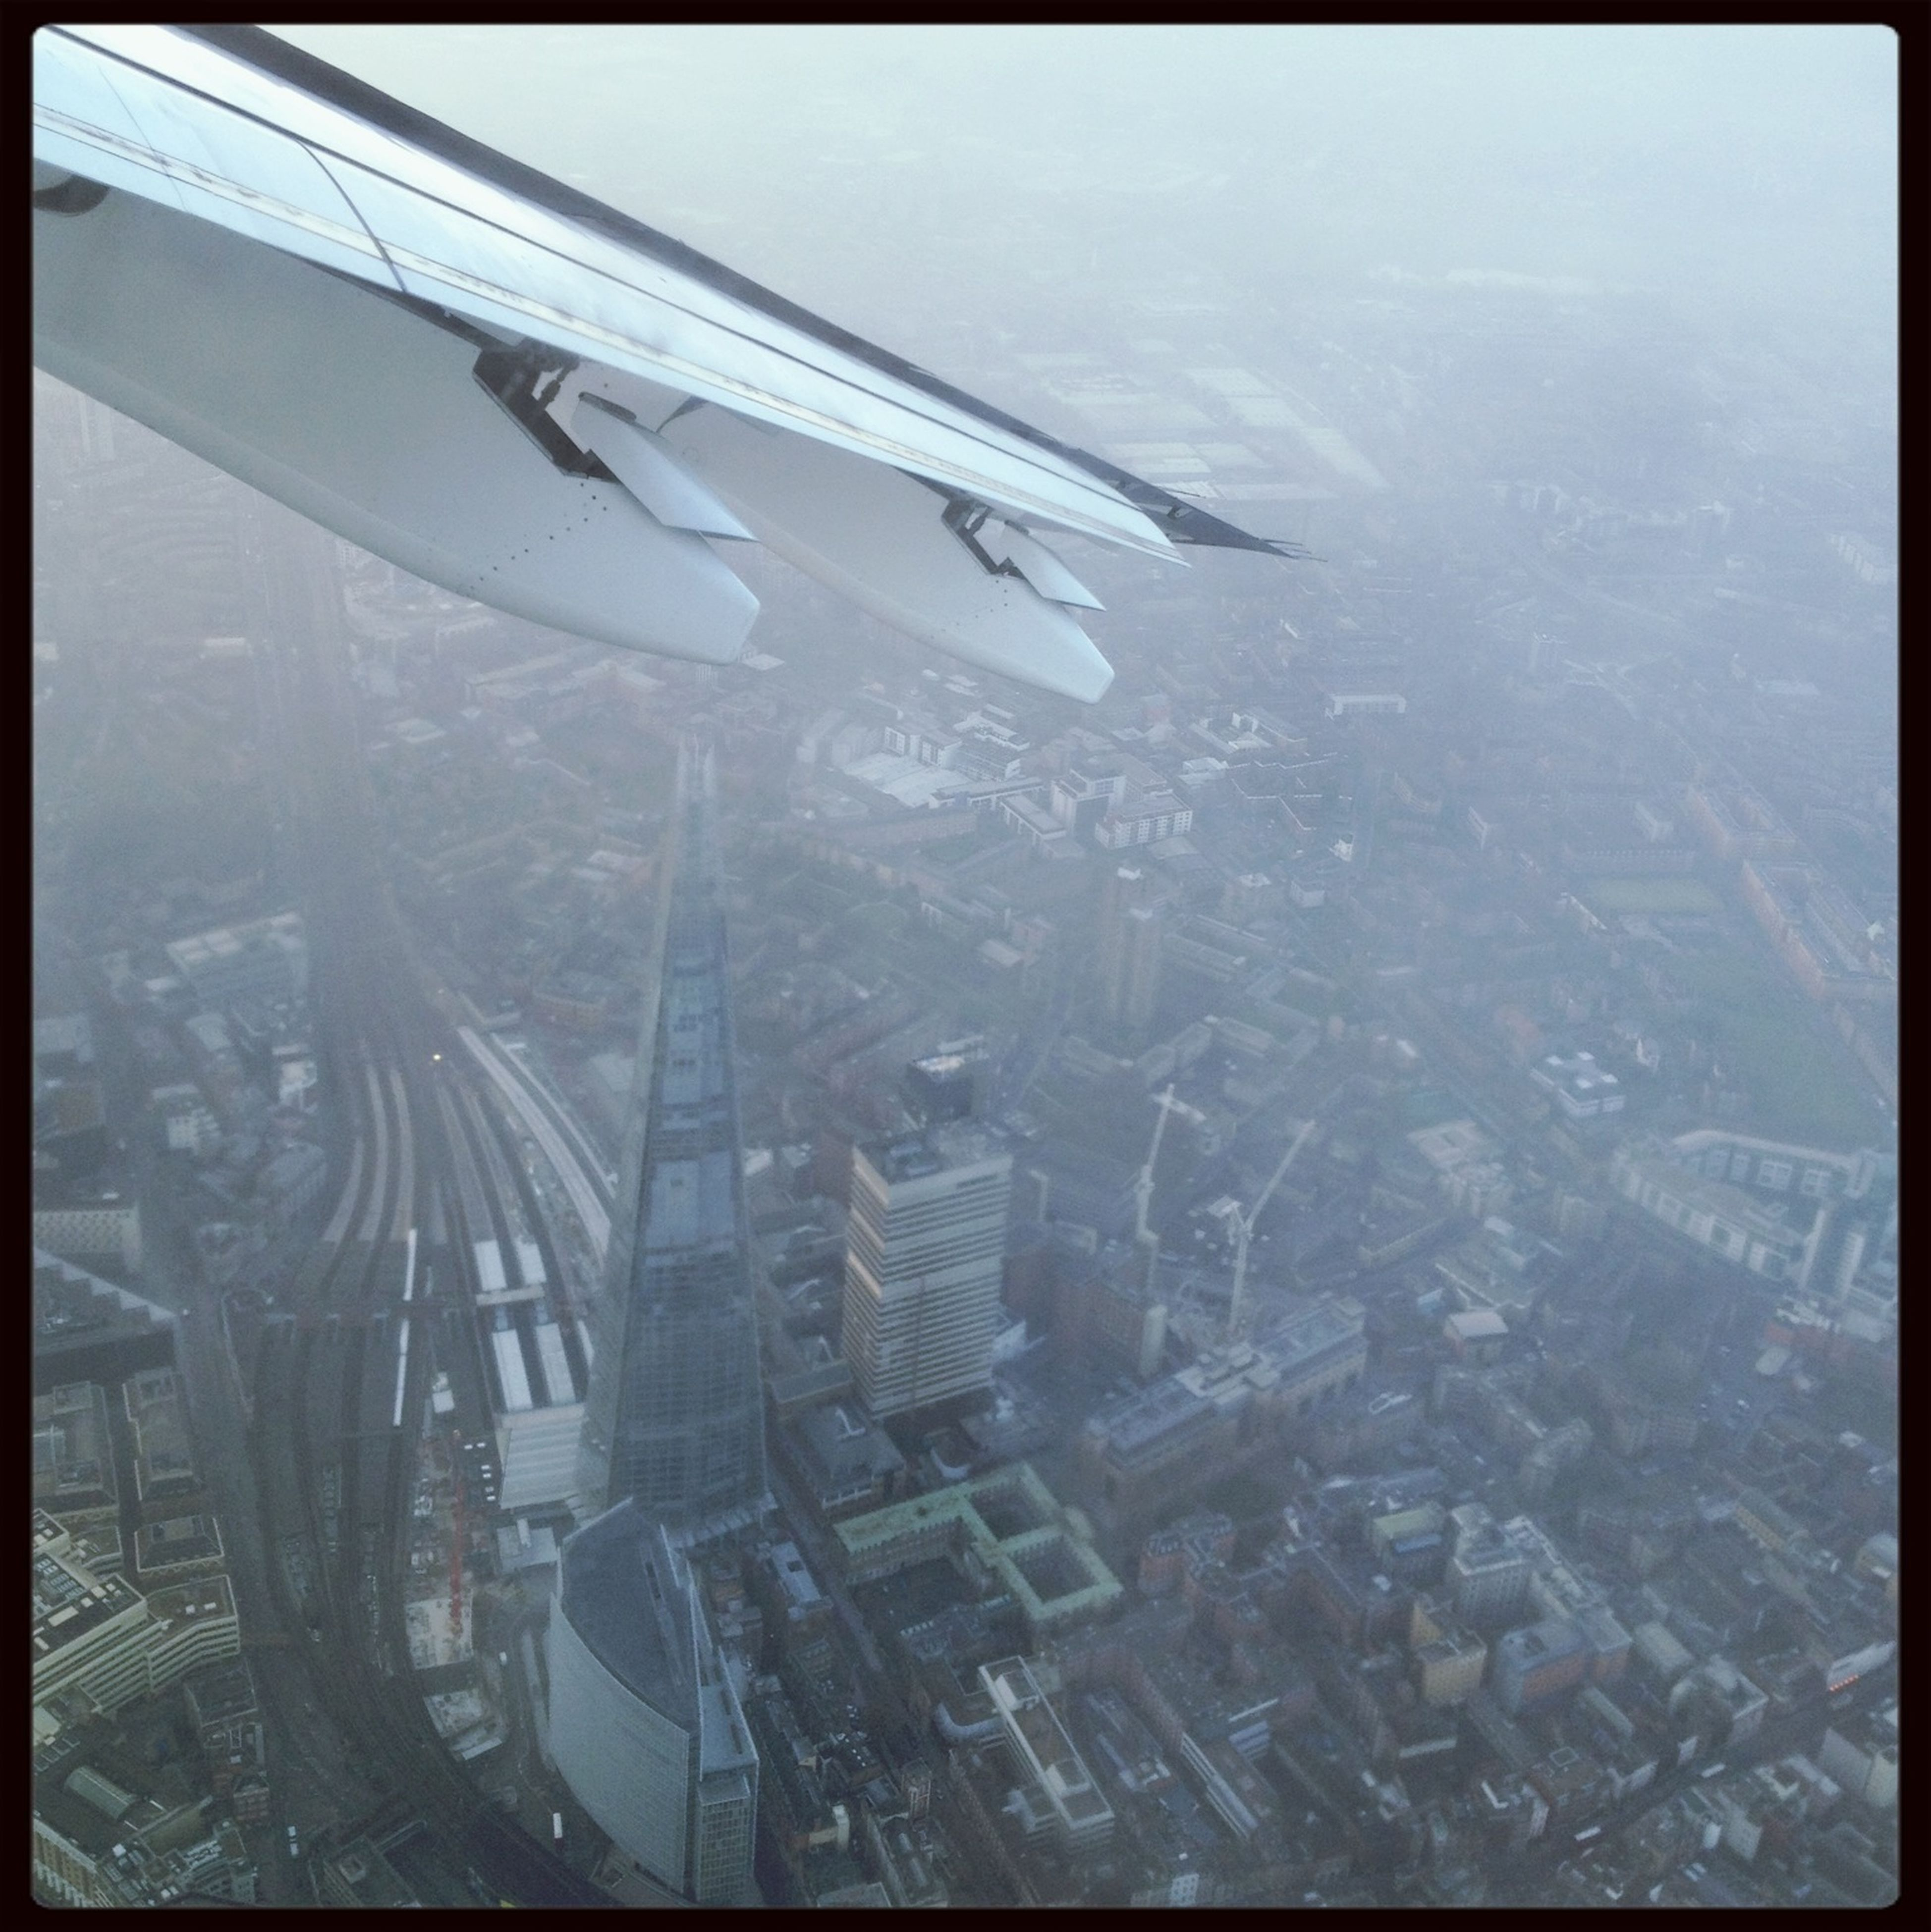 airplane, air vehicle, flying, aerial view, mode of transport, transfer print, transportation, aircraft wing, auto post production filter, part of, mid-air, travel, cropped, water, high angle view, journey, day, on the move, city, landscape